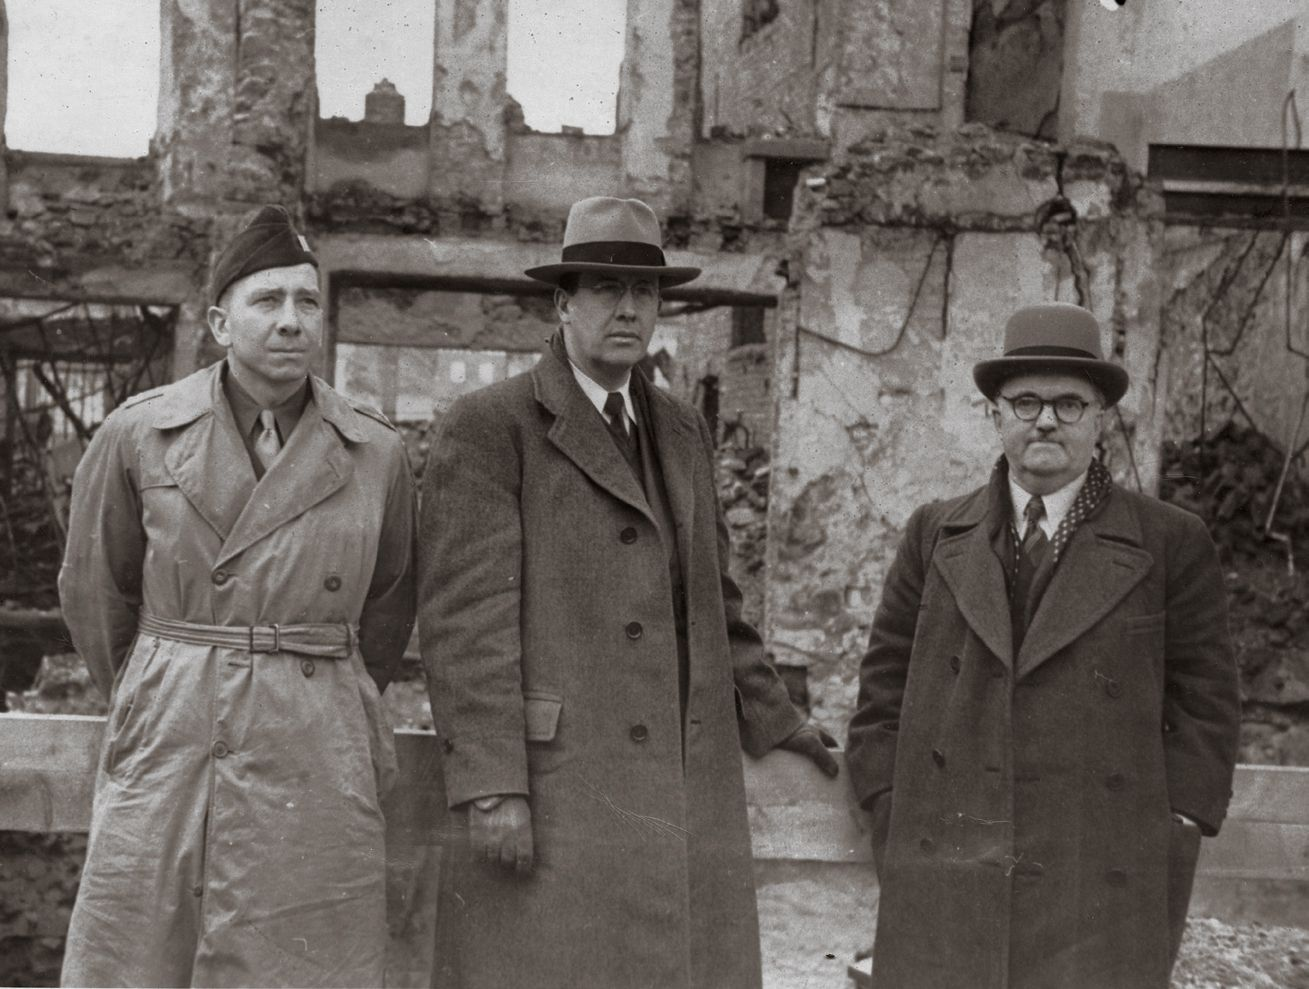 Elder Benson standing with his companions during his mission in Europe, around 1946. Teachings of Presidents of the Church: Ezra Taft Benson (2014), 56